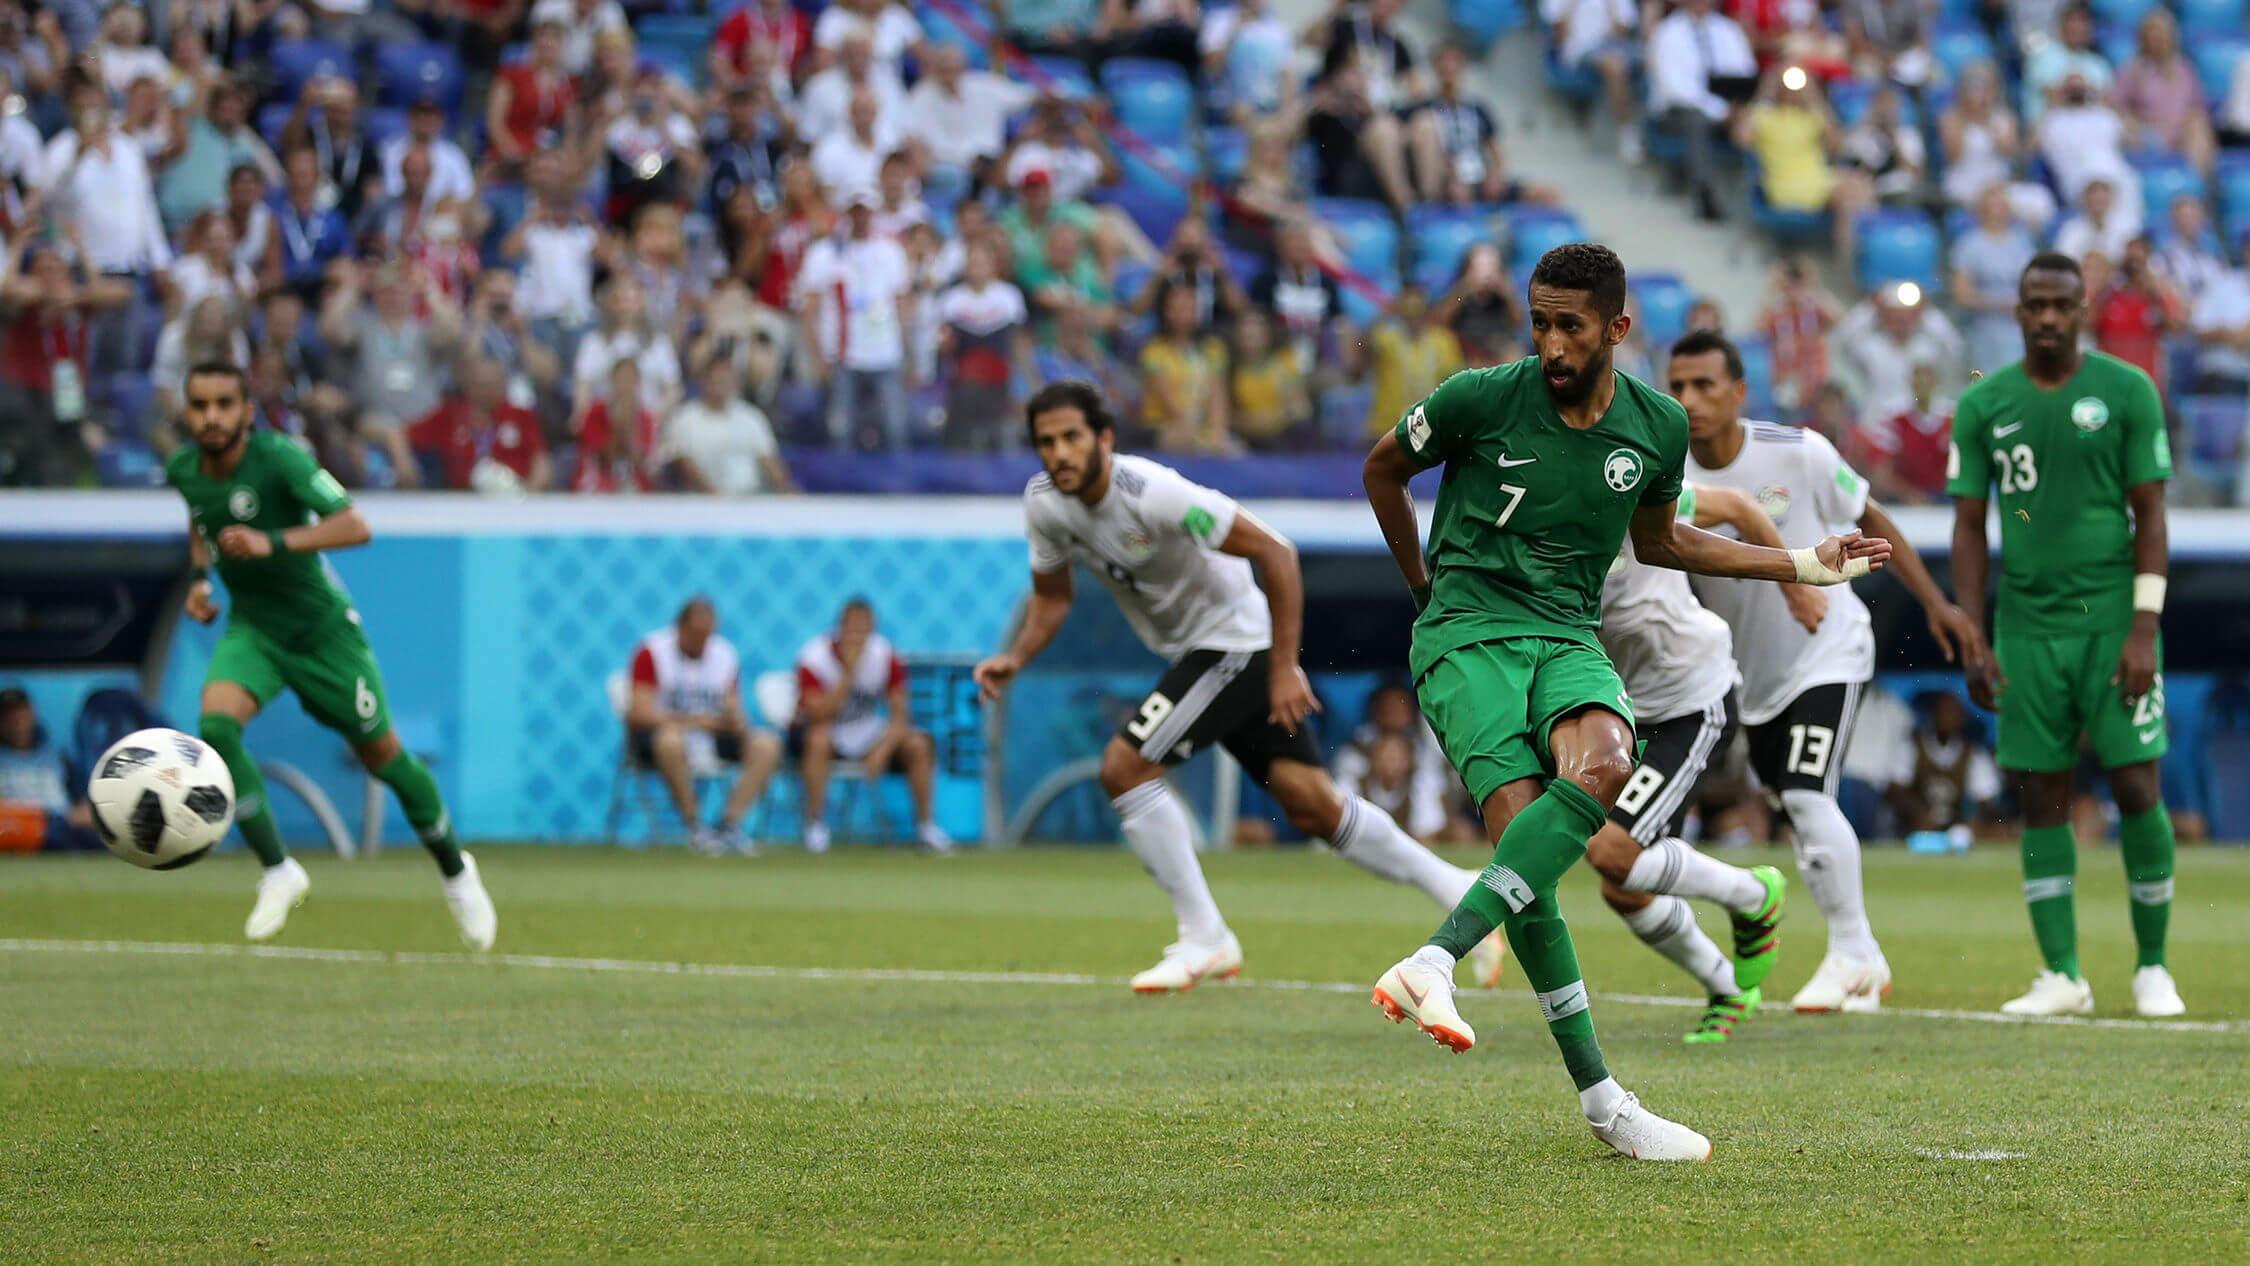 Egypt exit the World Cup 2018 with a disappointing loss to Saudi Arabia in their last game of Group A.